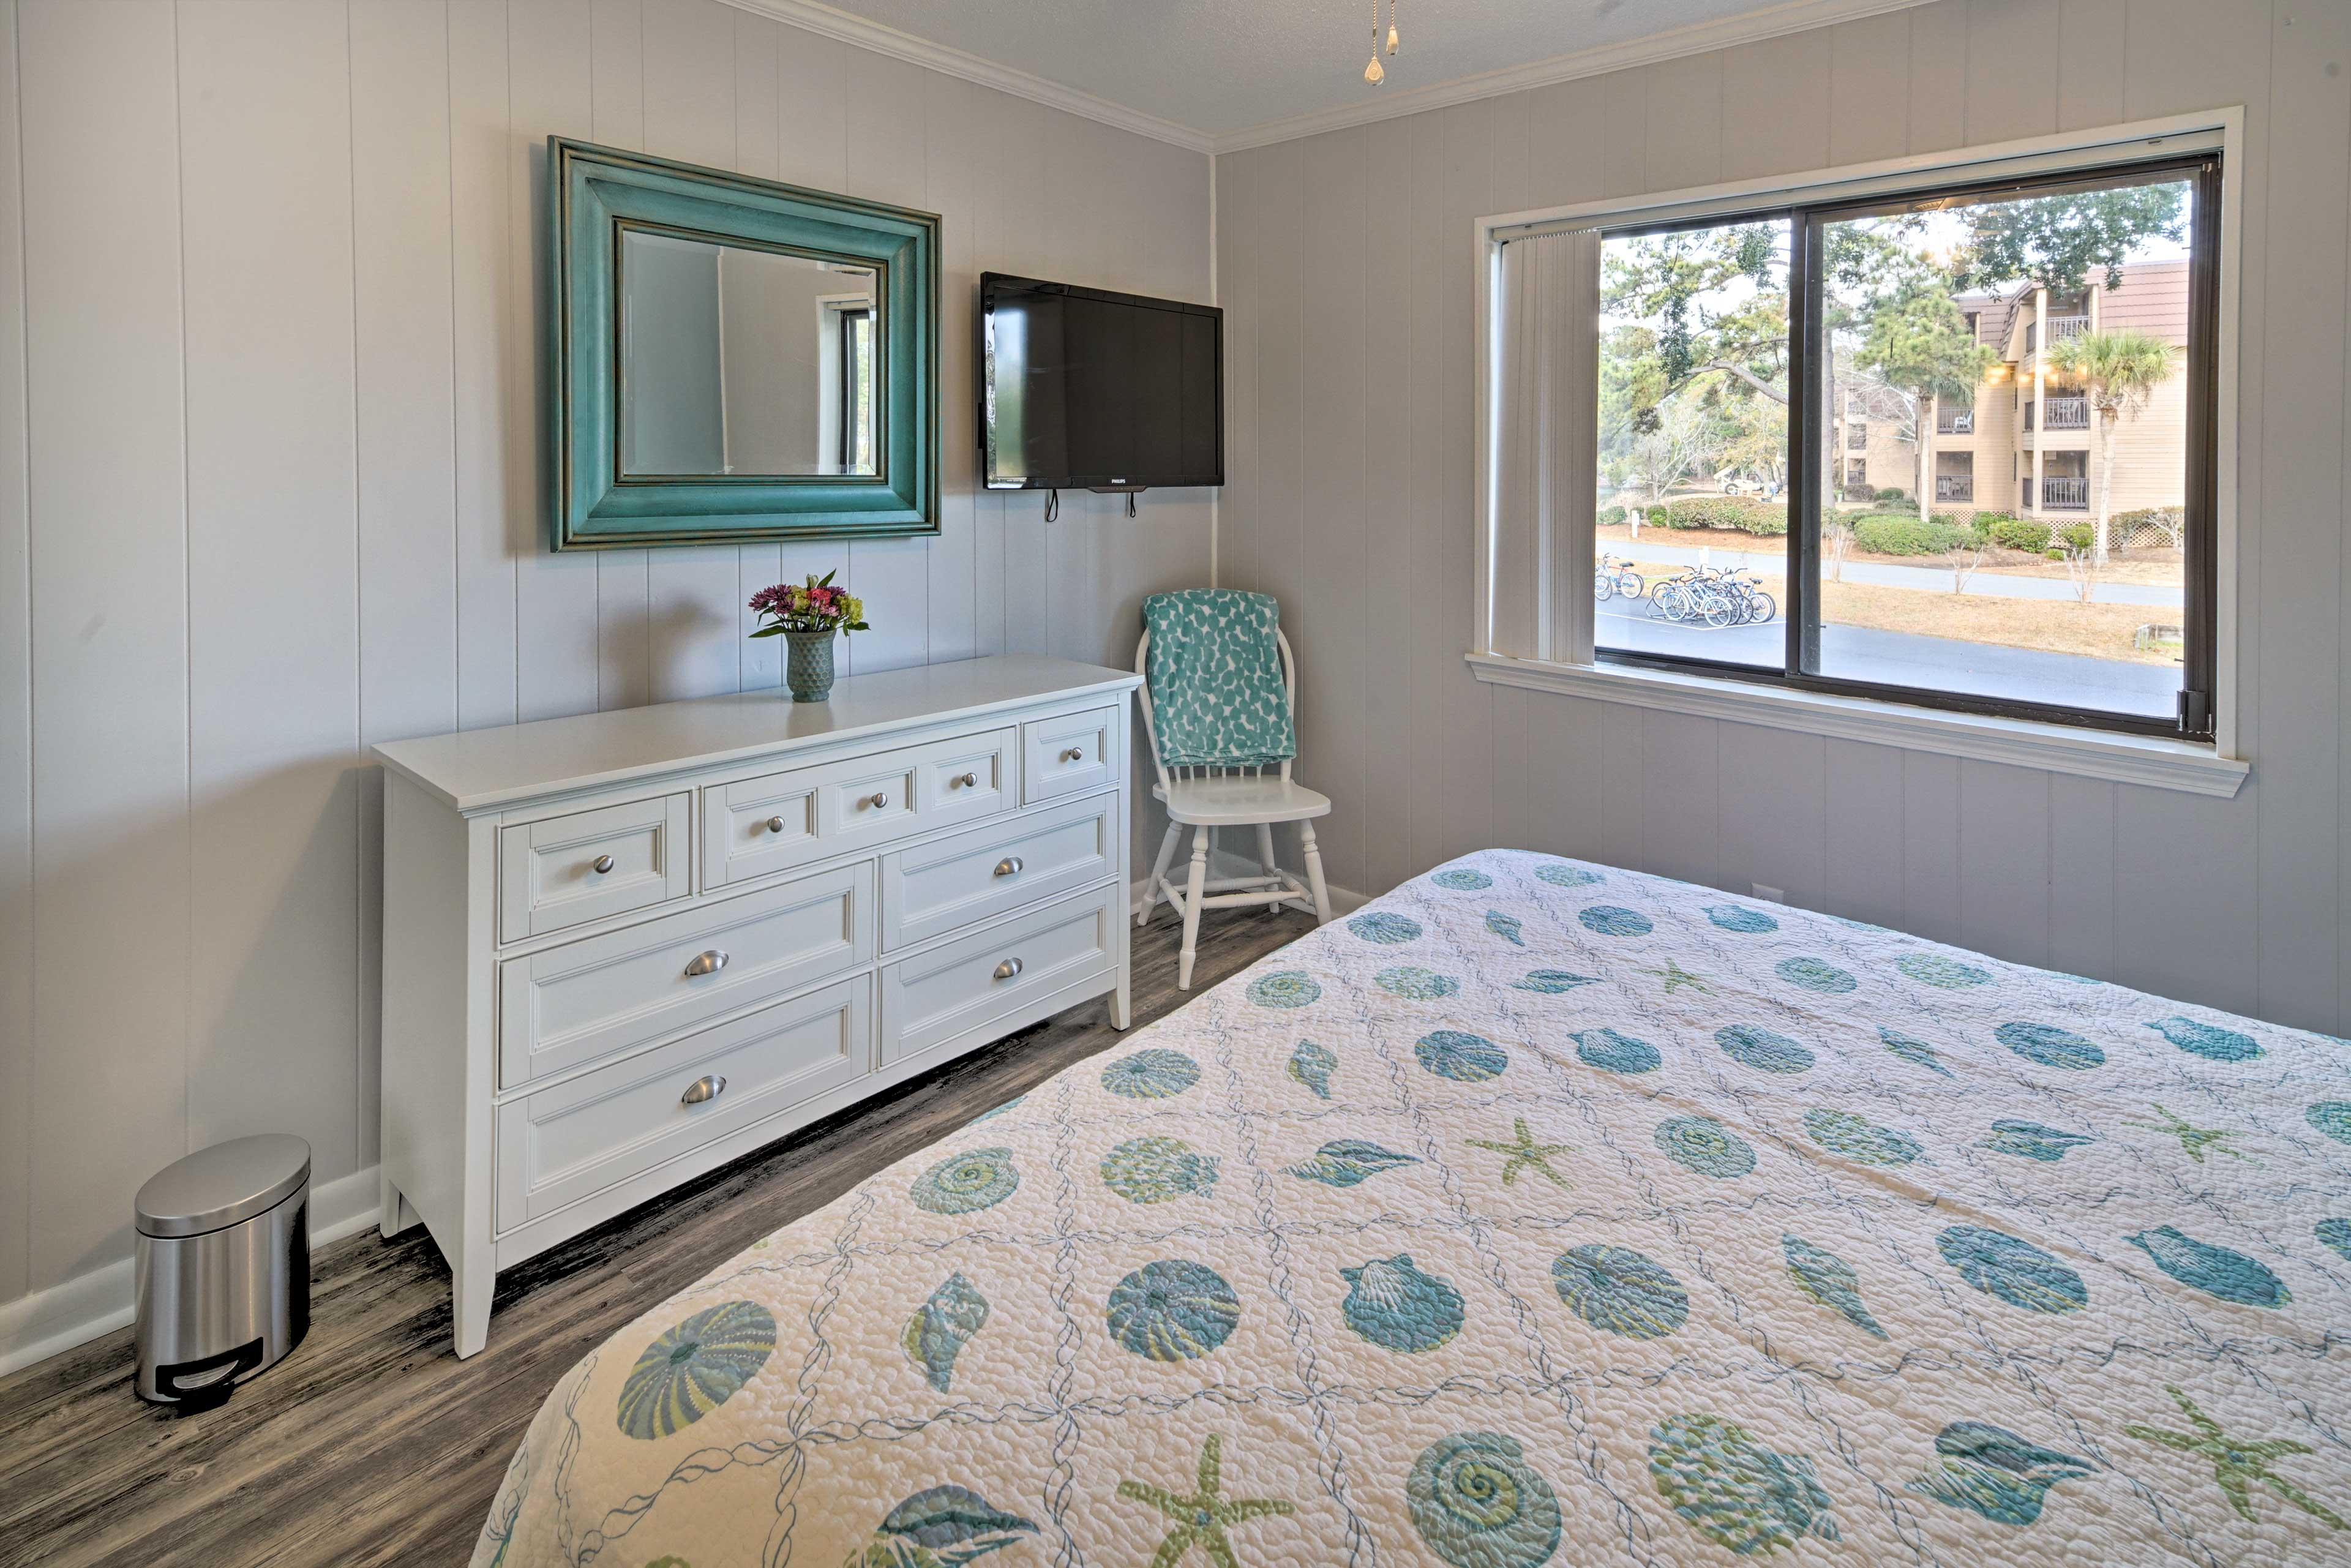 The master bedroom includes the a flat-screen TV and en-suite bathroom.